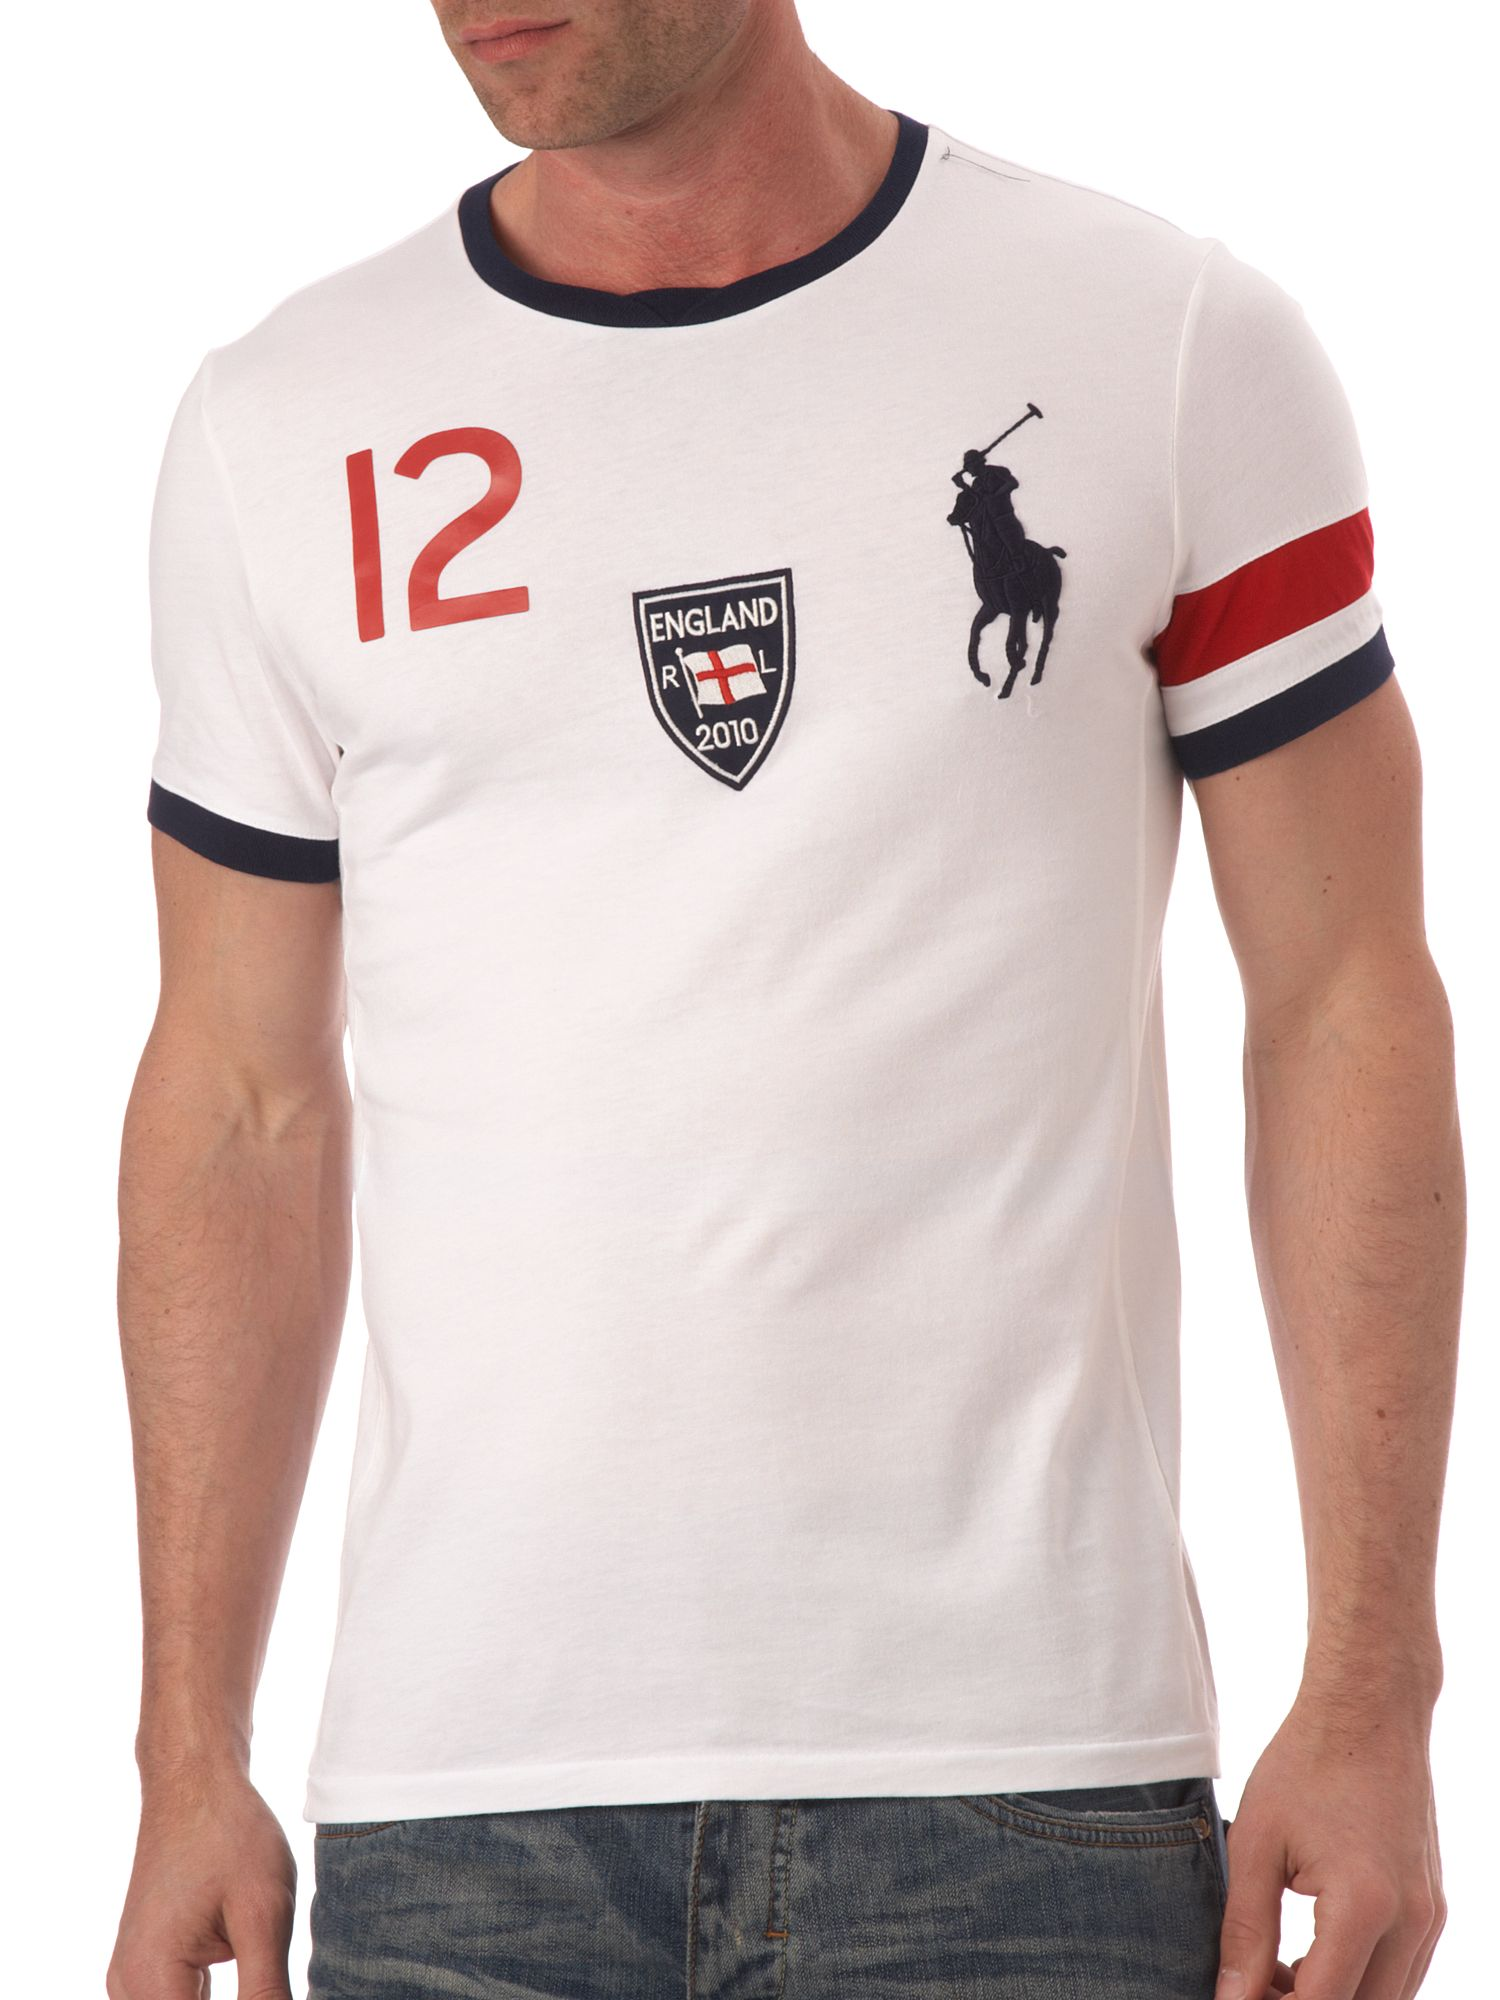 Ralph Lauren England custom fitted T-shirt White product image